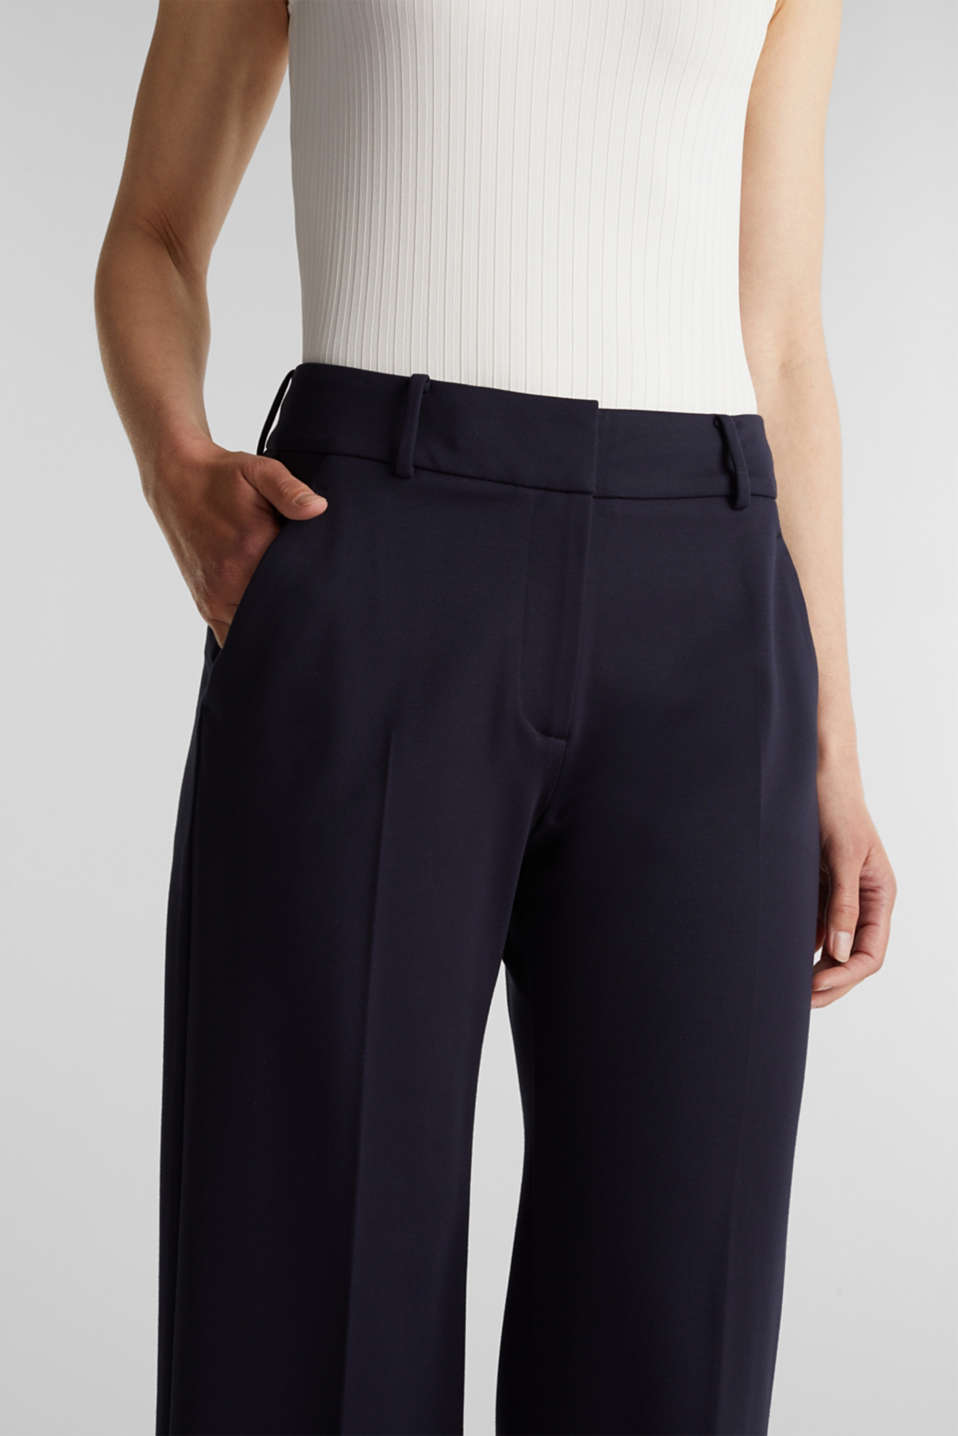 Stretch jersey culottes, NAVY, detail image number 2